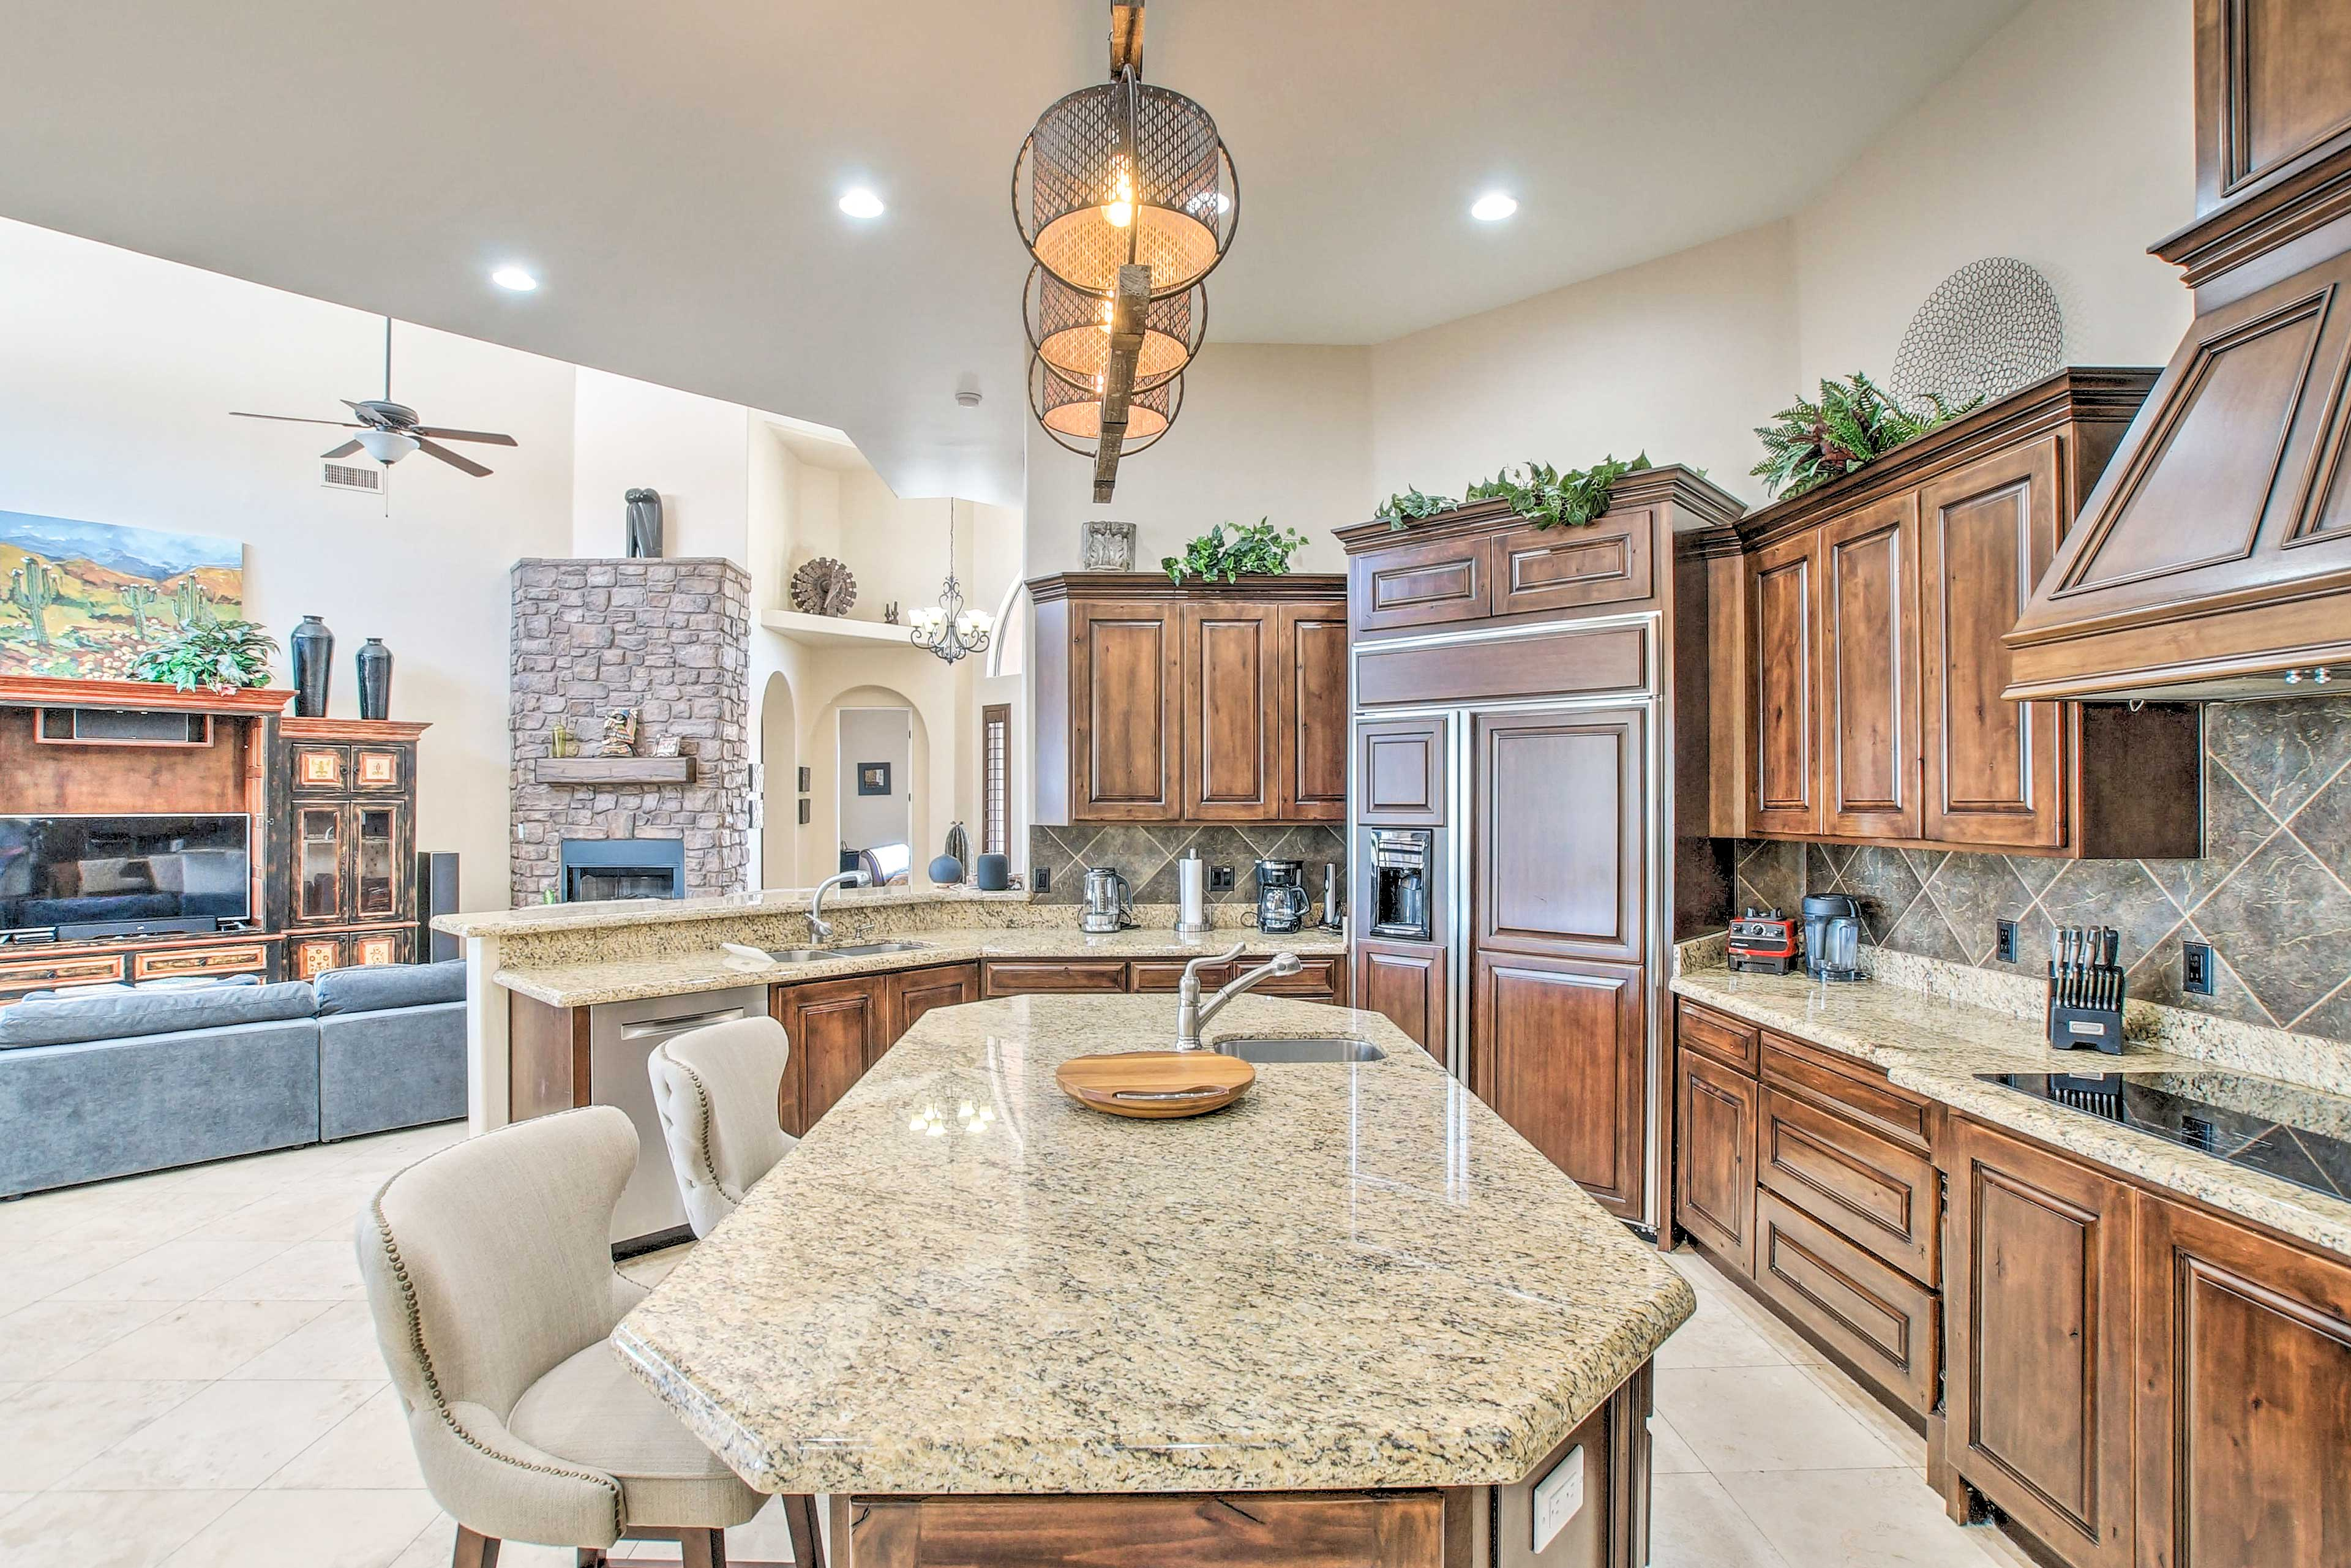 The fully equipped kitchen with granite countertops makes cooking a breeze.